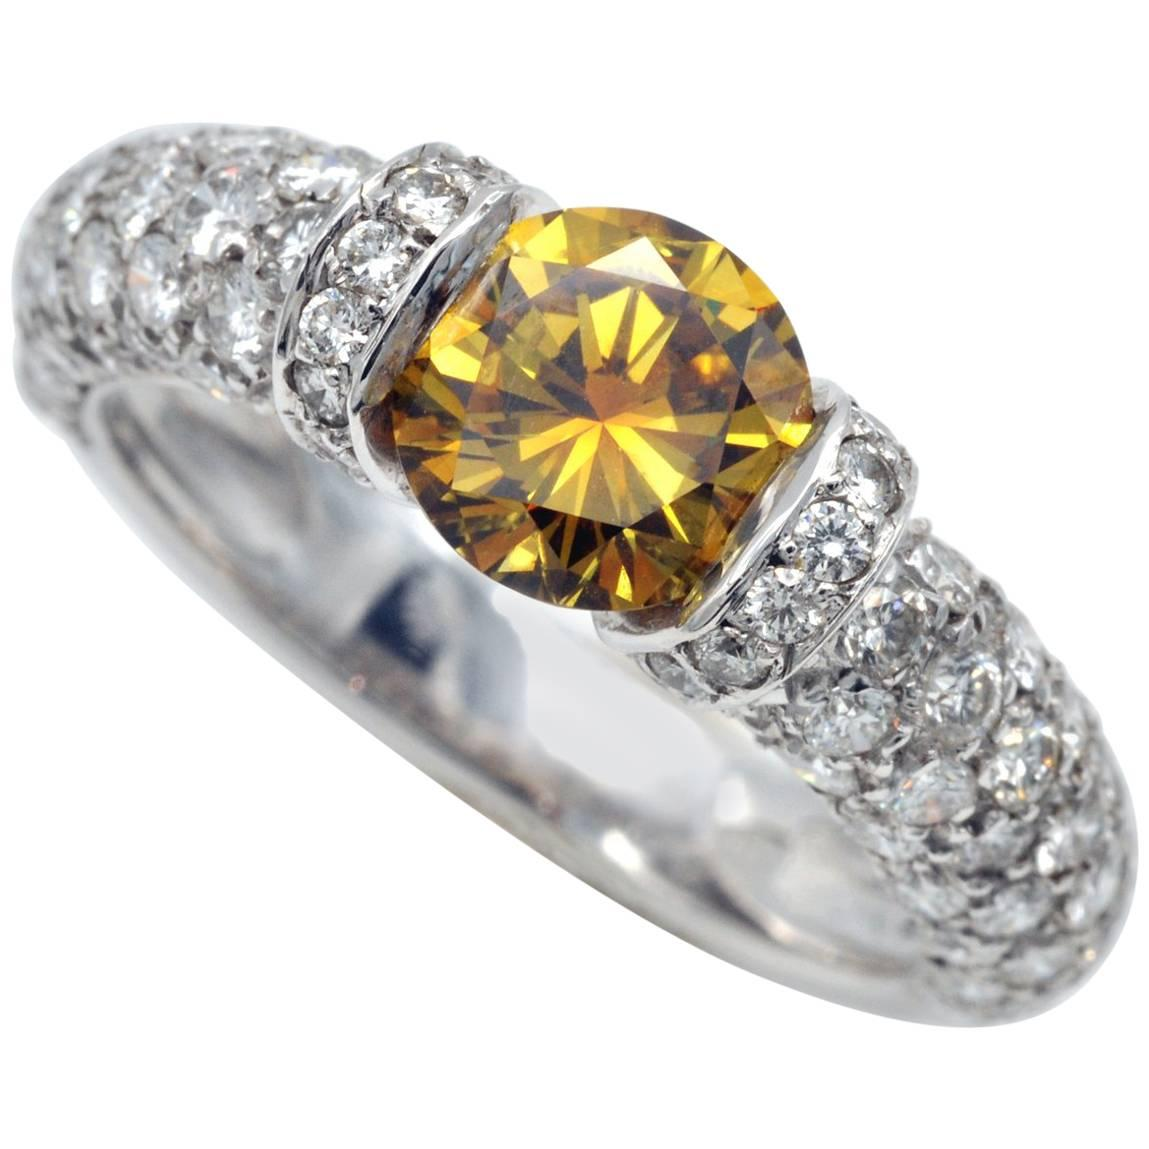 blood engagement diamond one features gallery wed wedding rings throughout ring whiteflash their in